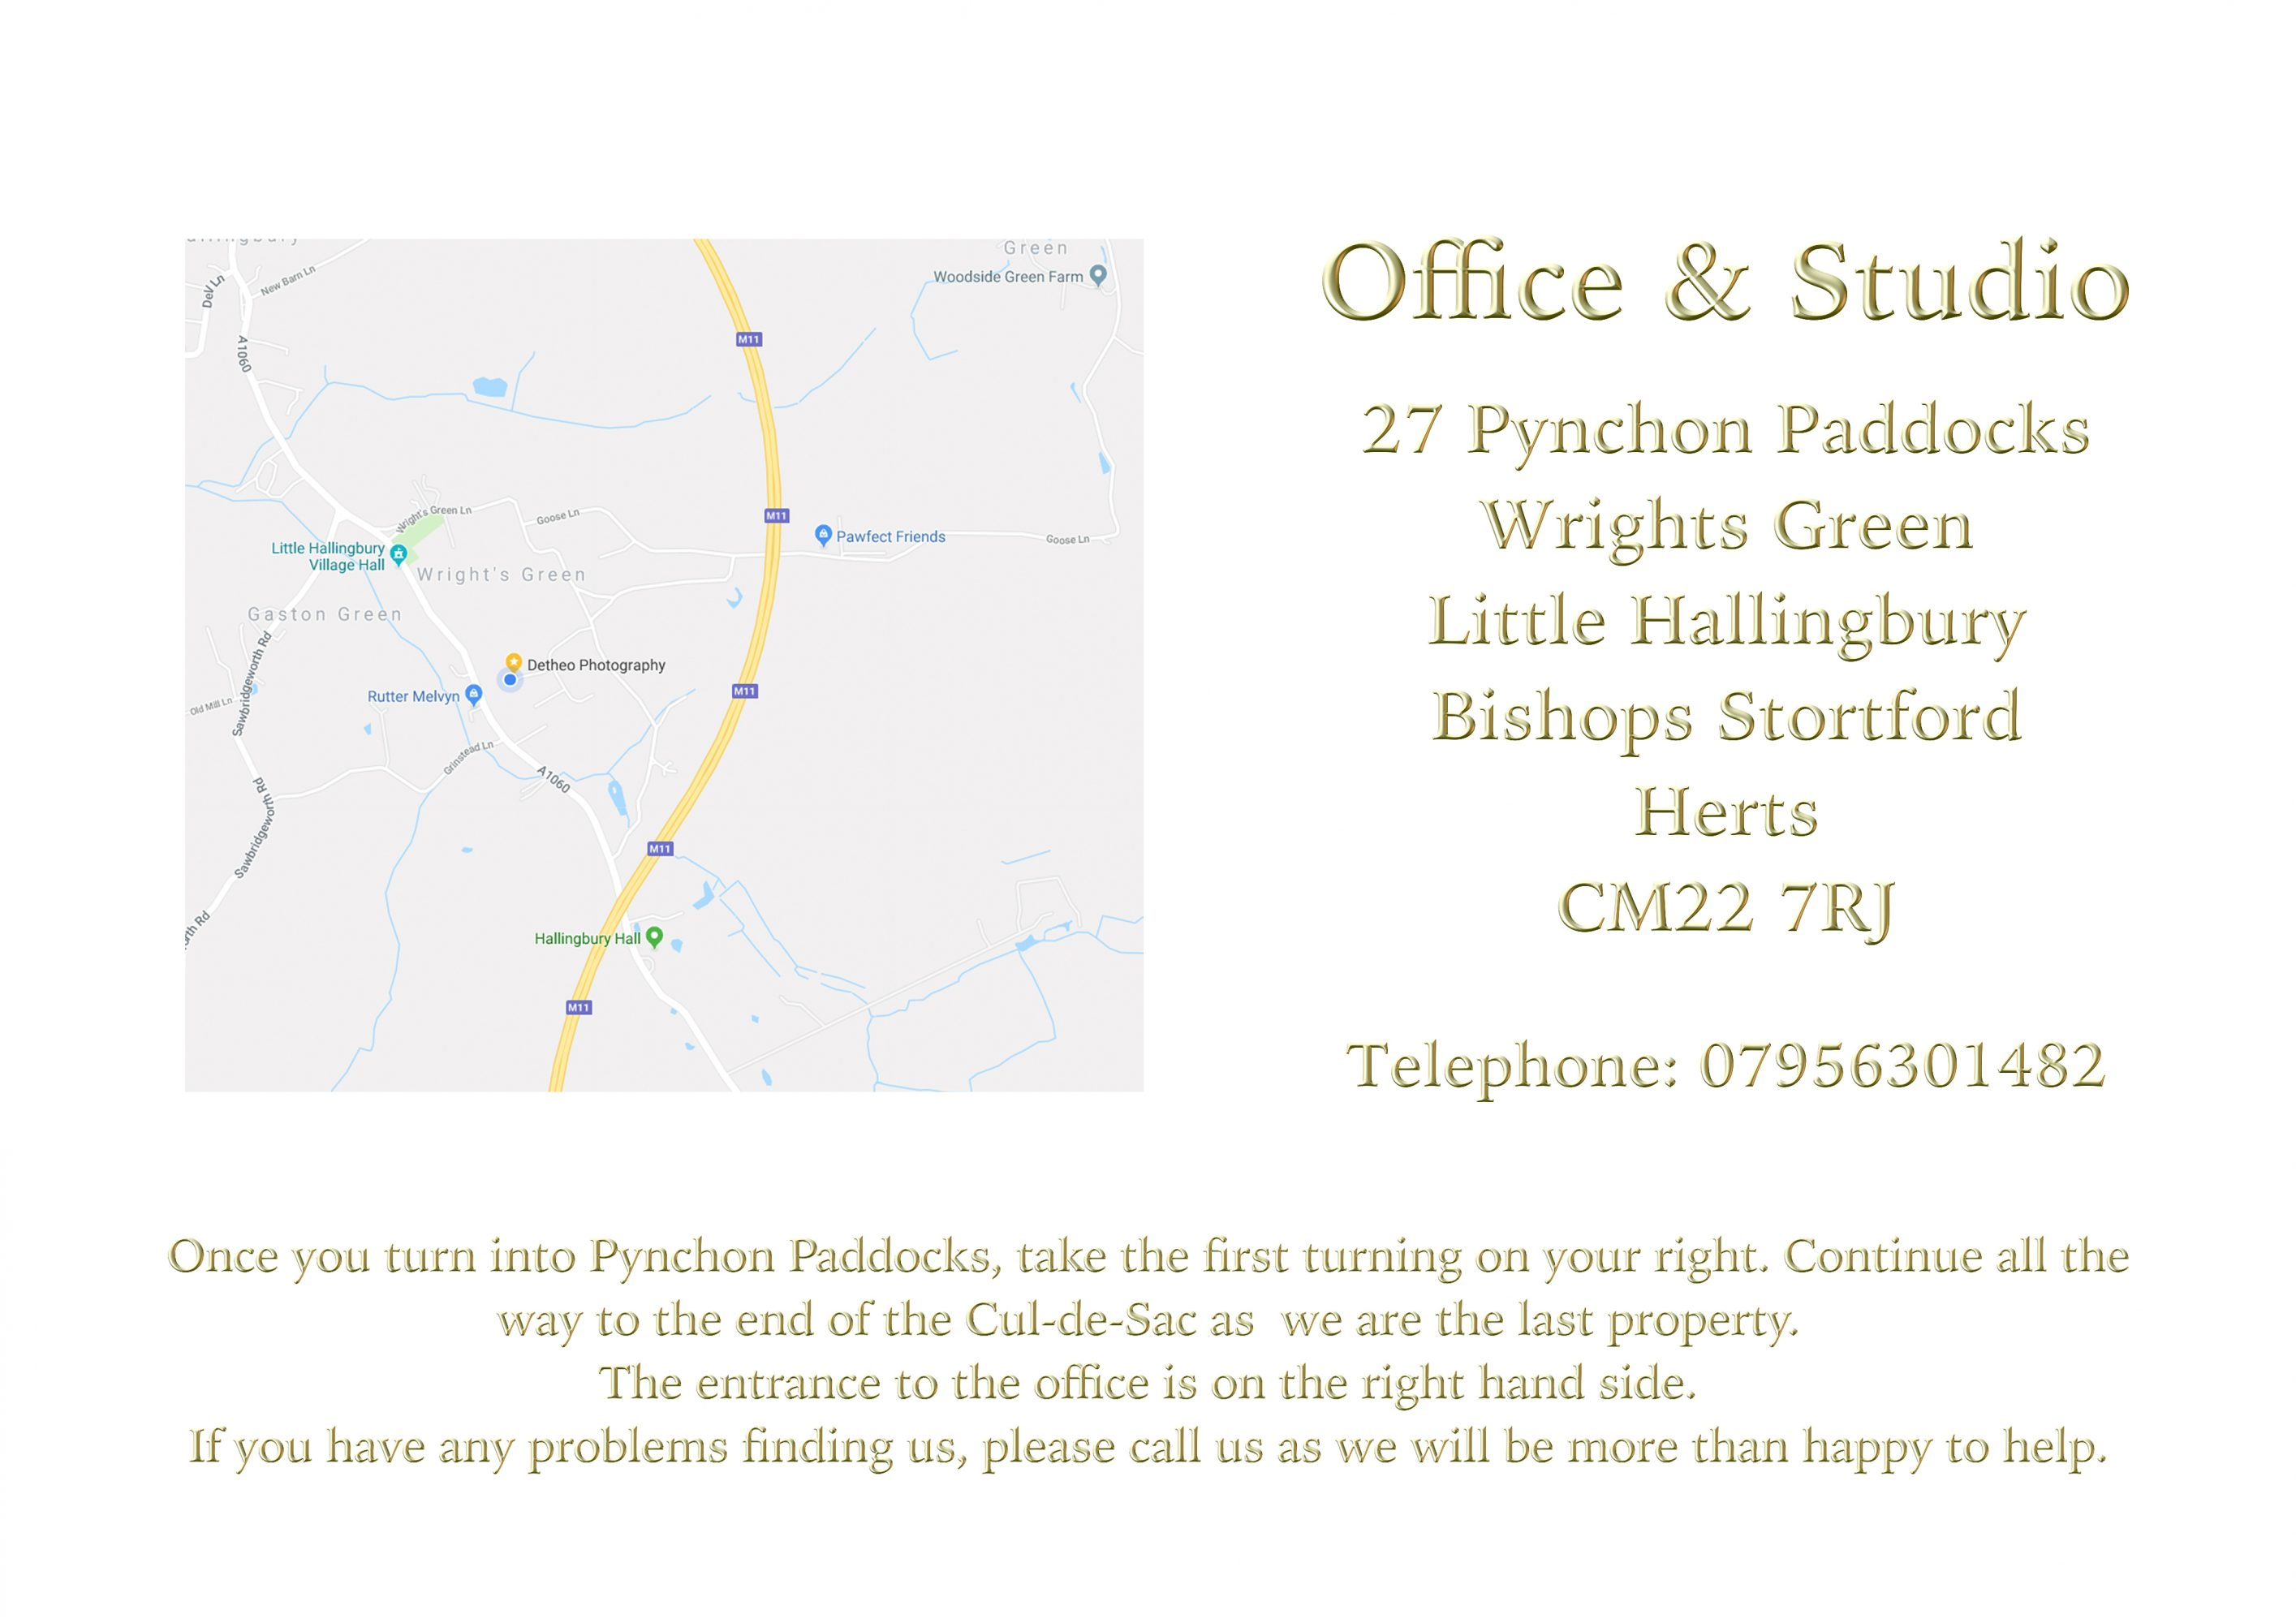 Map and Directions to Detheo Photography Office and Studio